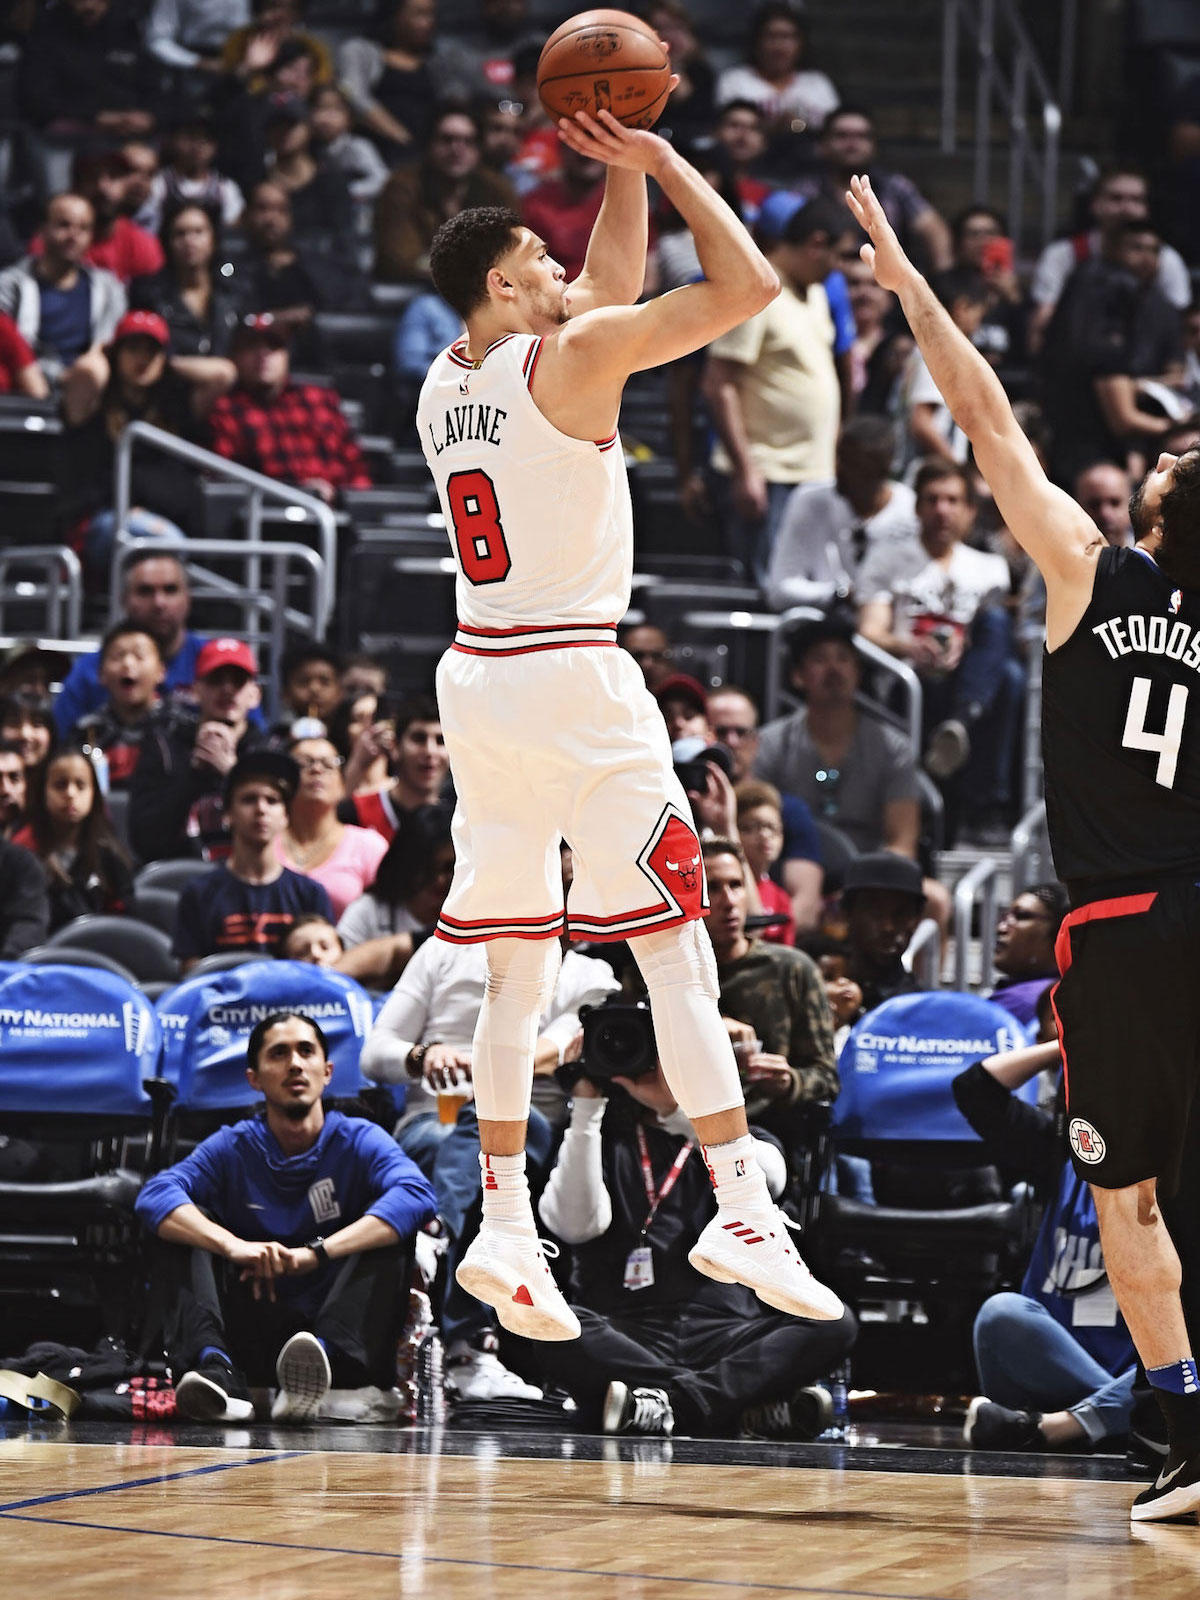 Zach LaVine shoots the ball against the LA Clippers